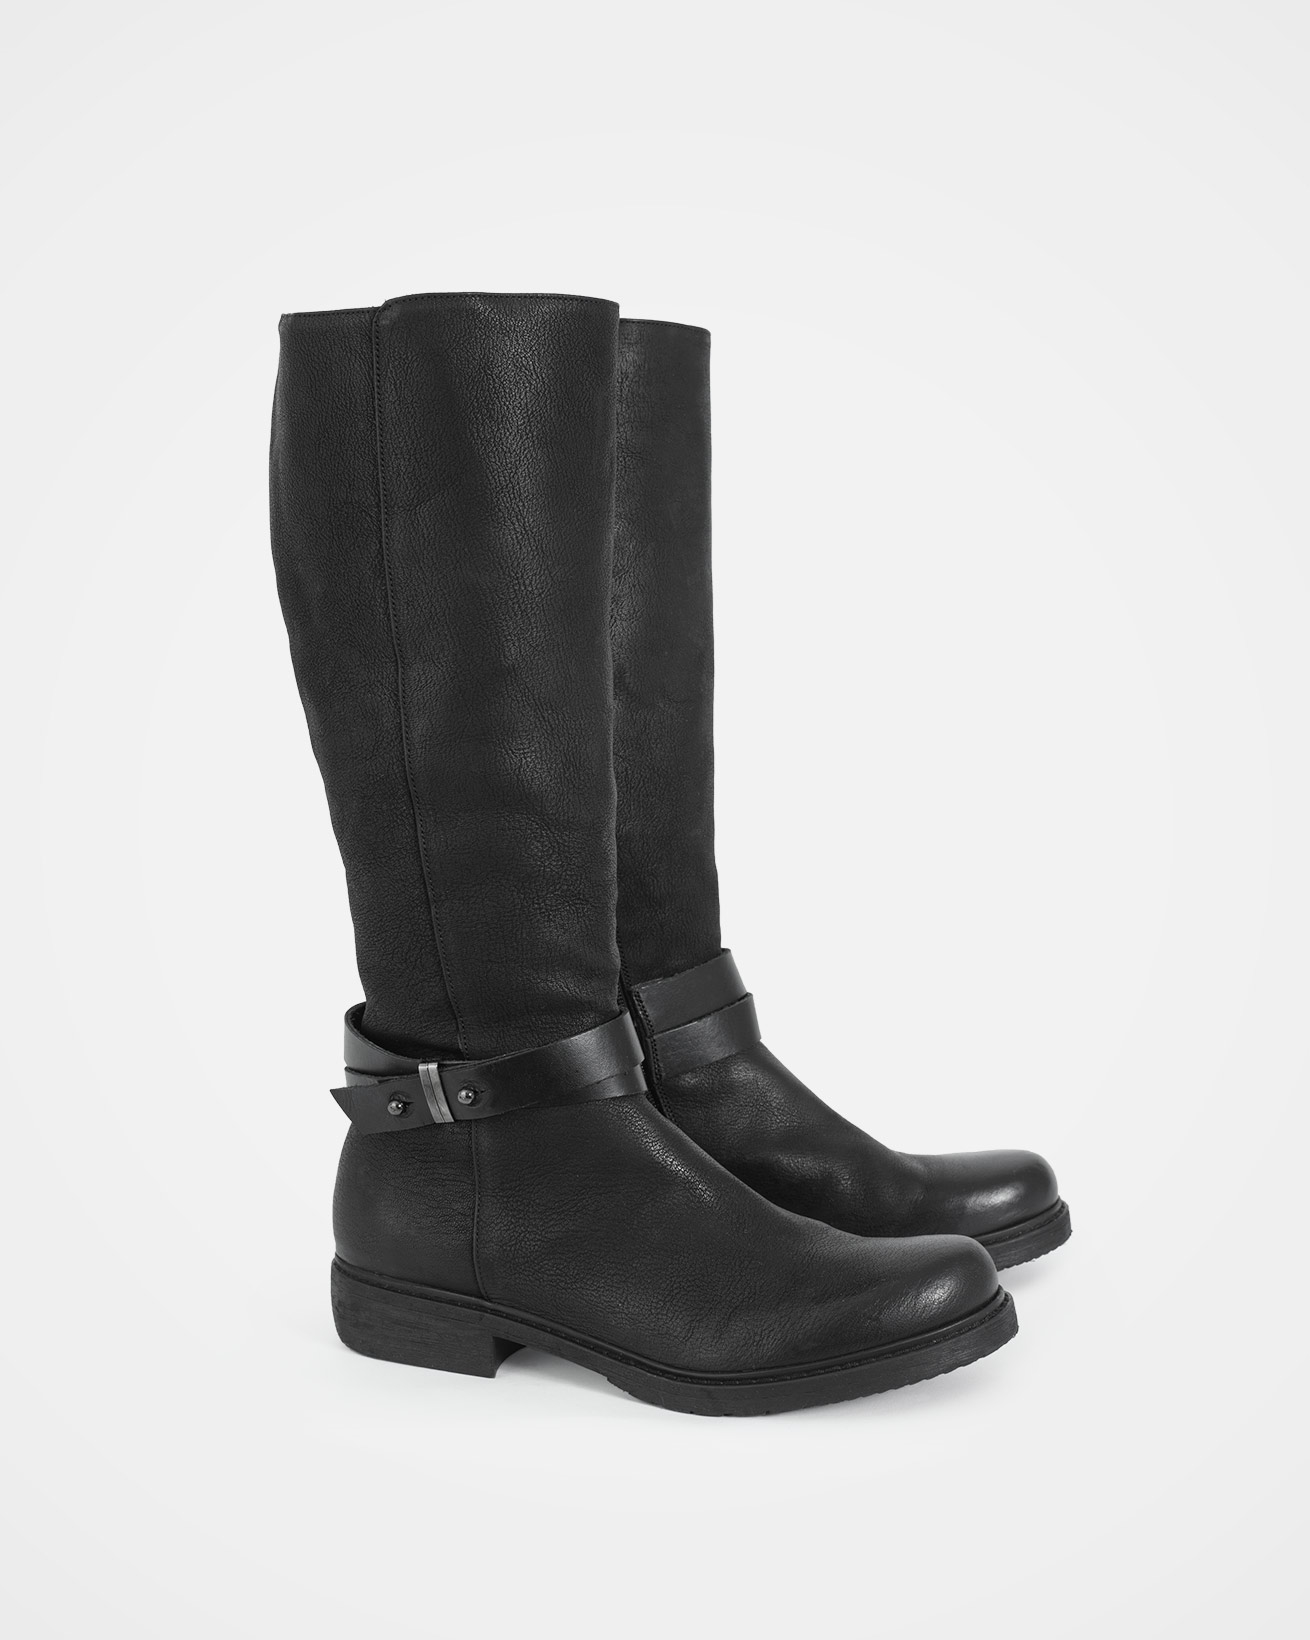 7639_city-riding-boot_black_pair.jpg